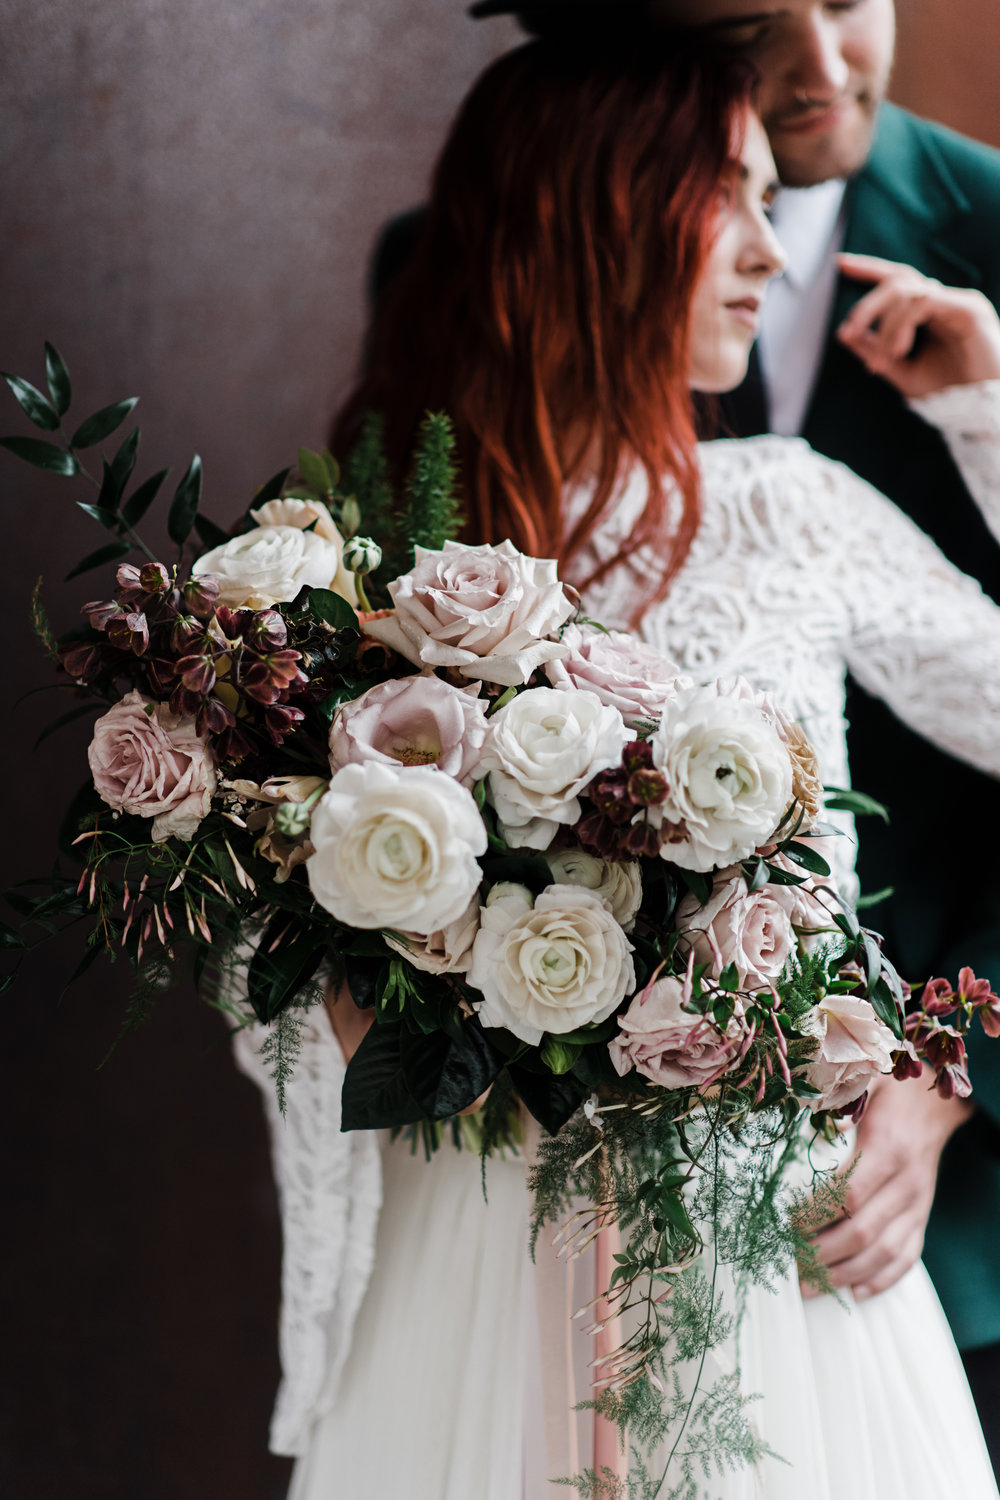 Bridal bouquet with soft pink roses and cream peonies and lush greens held by bride leaning back into groom.